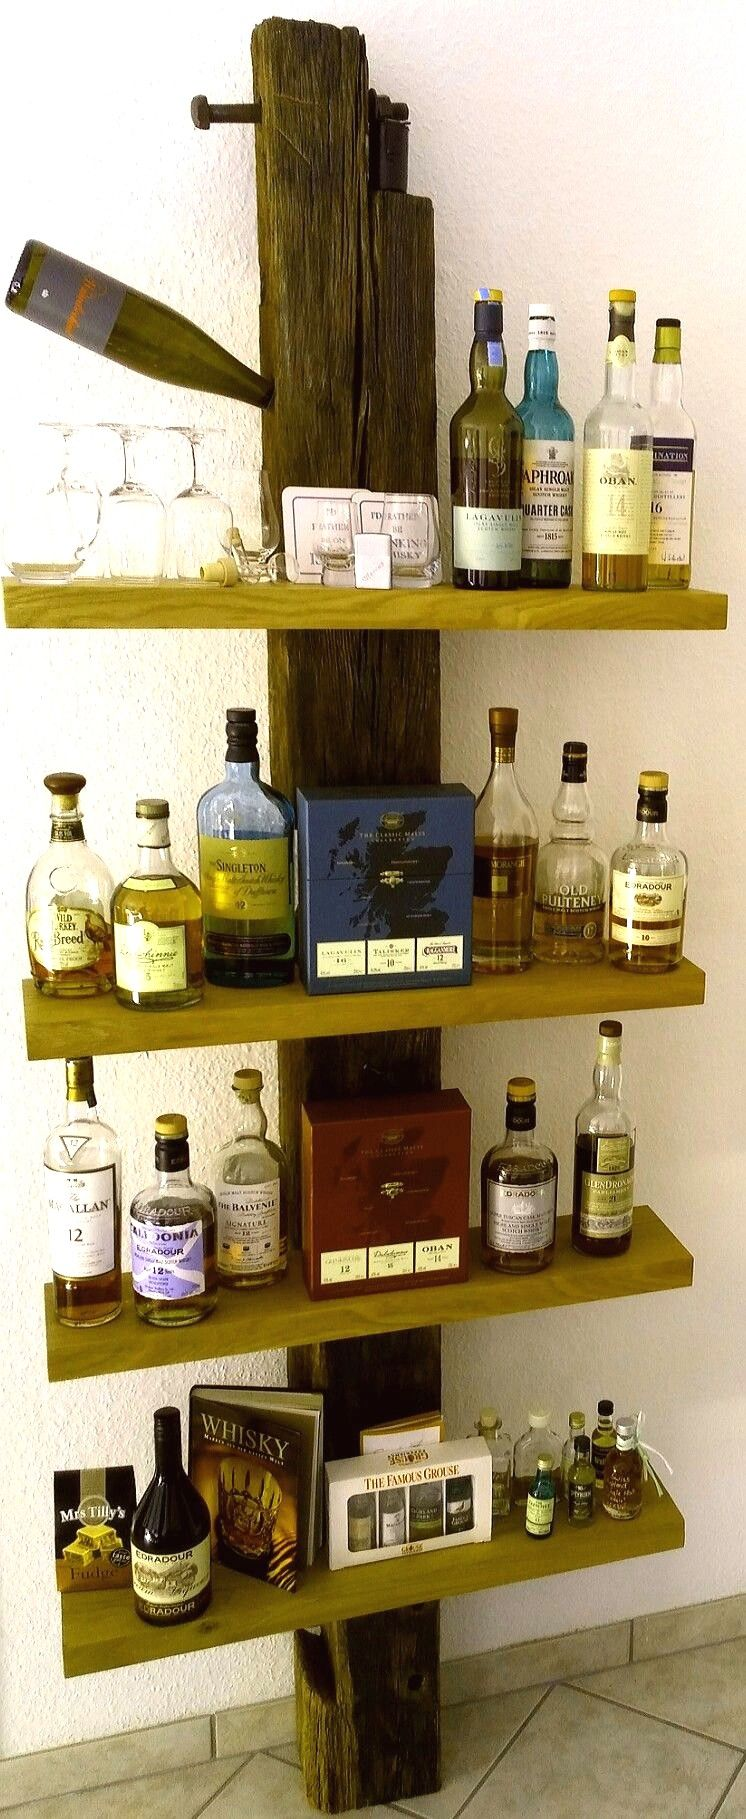 Pin By Amy Burhen On Farm In 2020 Whiskey Room Whisky Bar Whisky